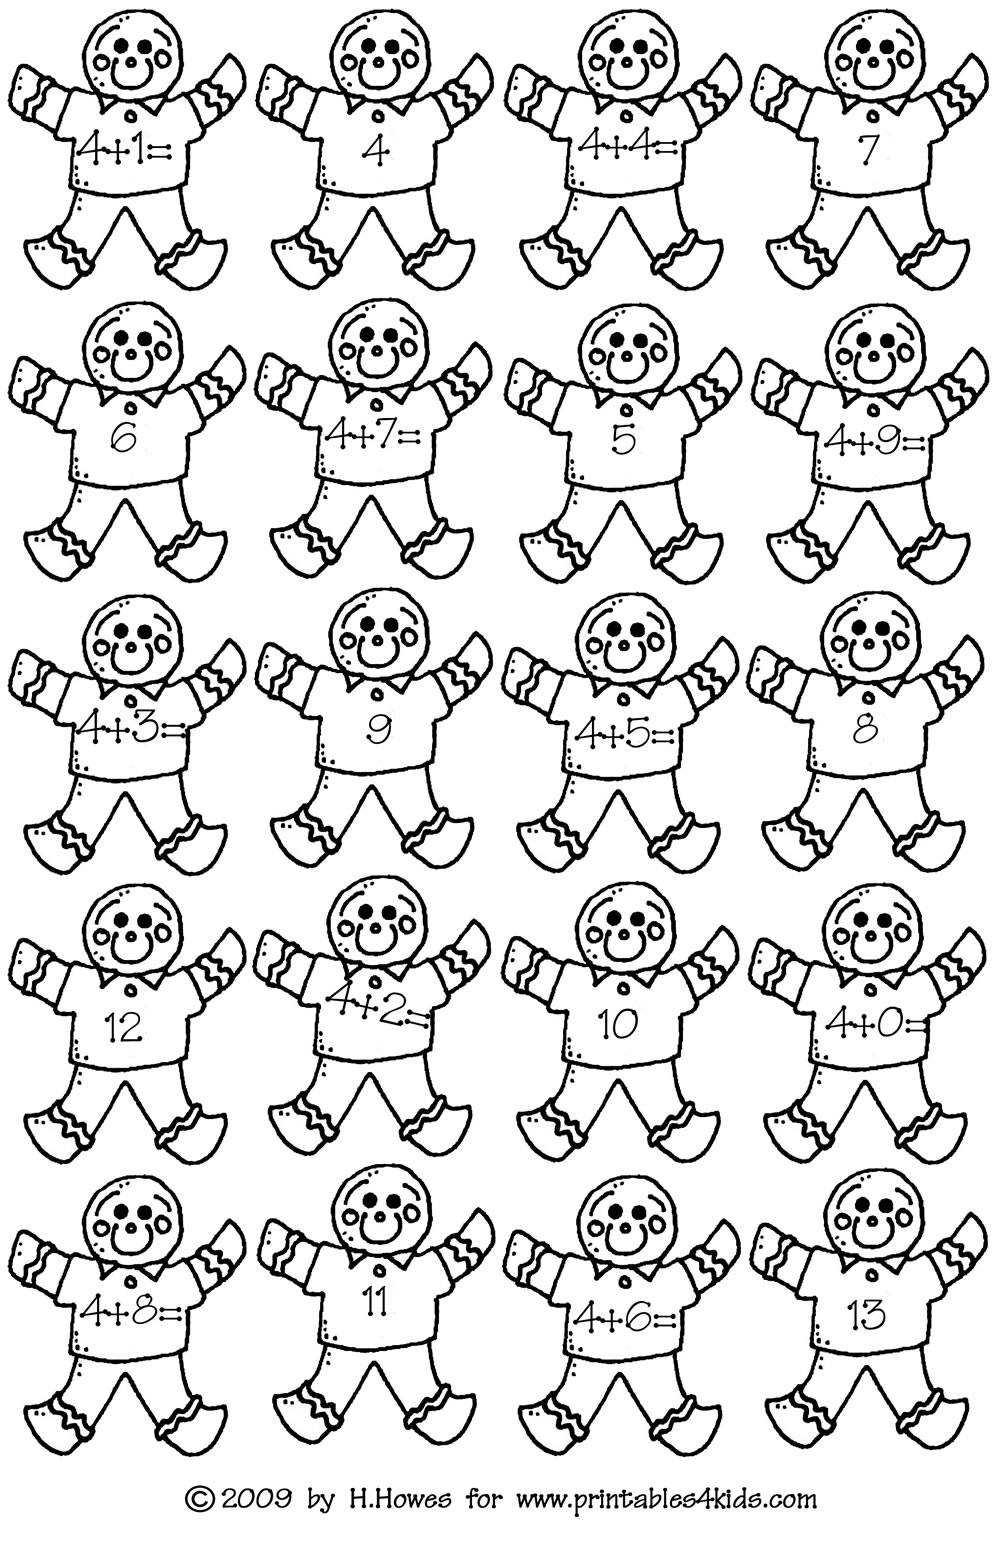 math facts coloring pages - photo#13